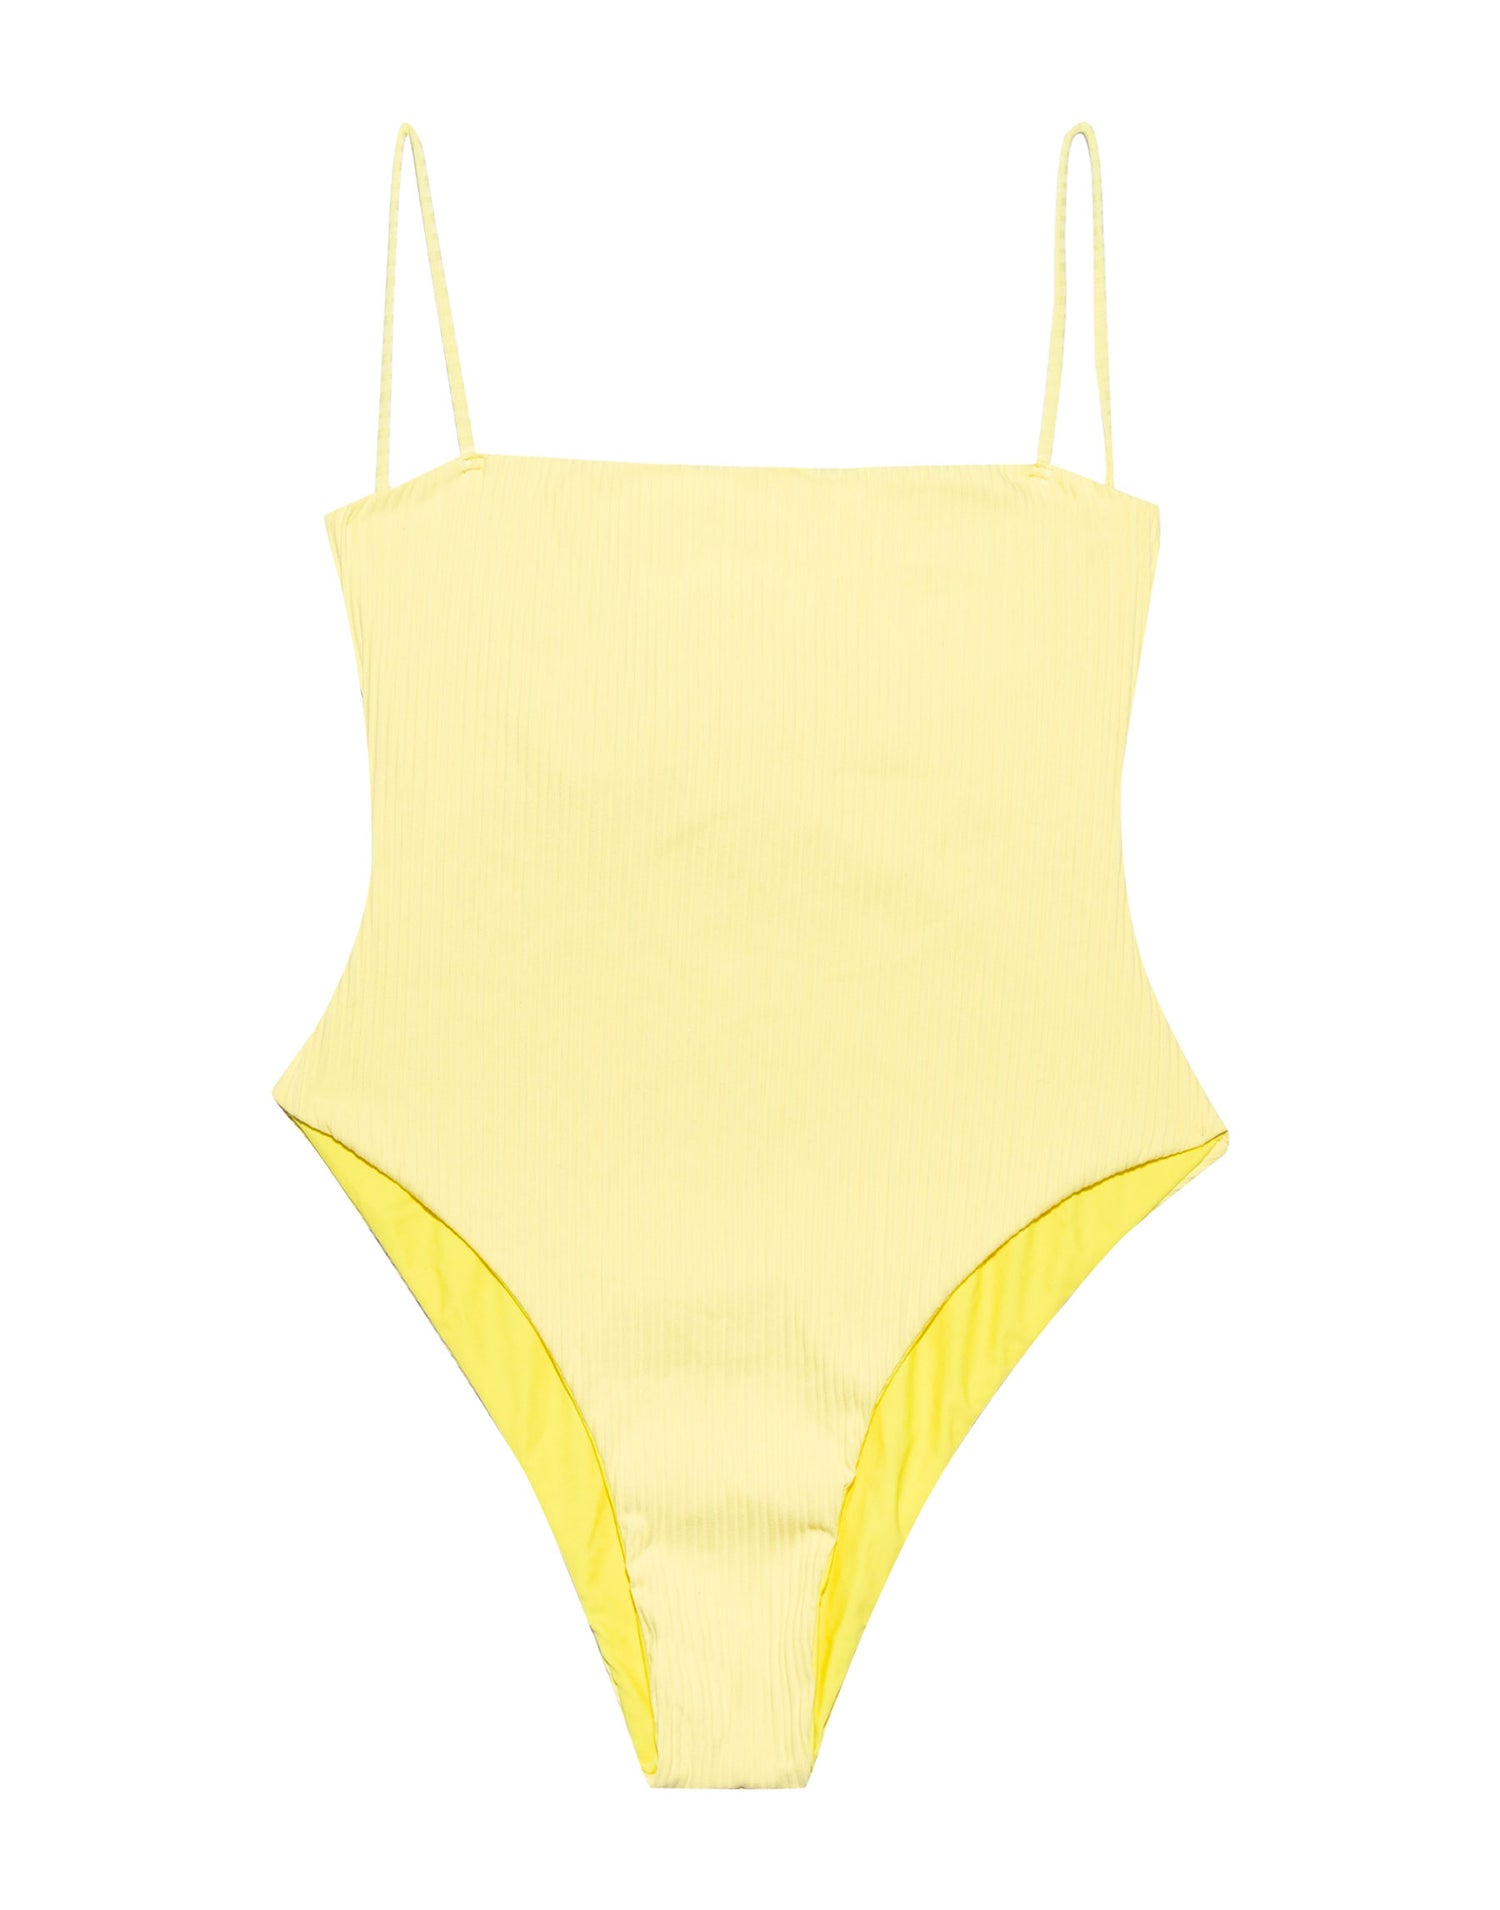 Luna One Piece in Lemon Yellow Rib - product view